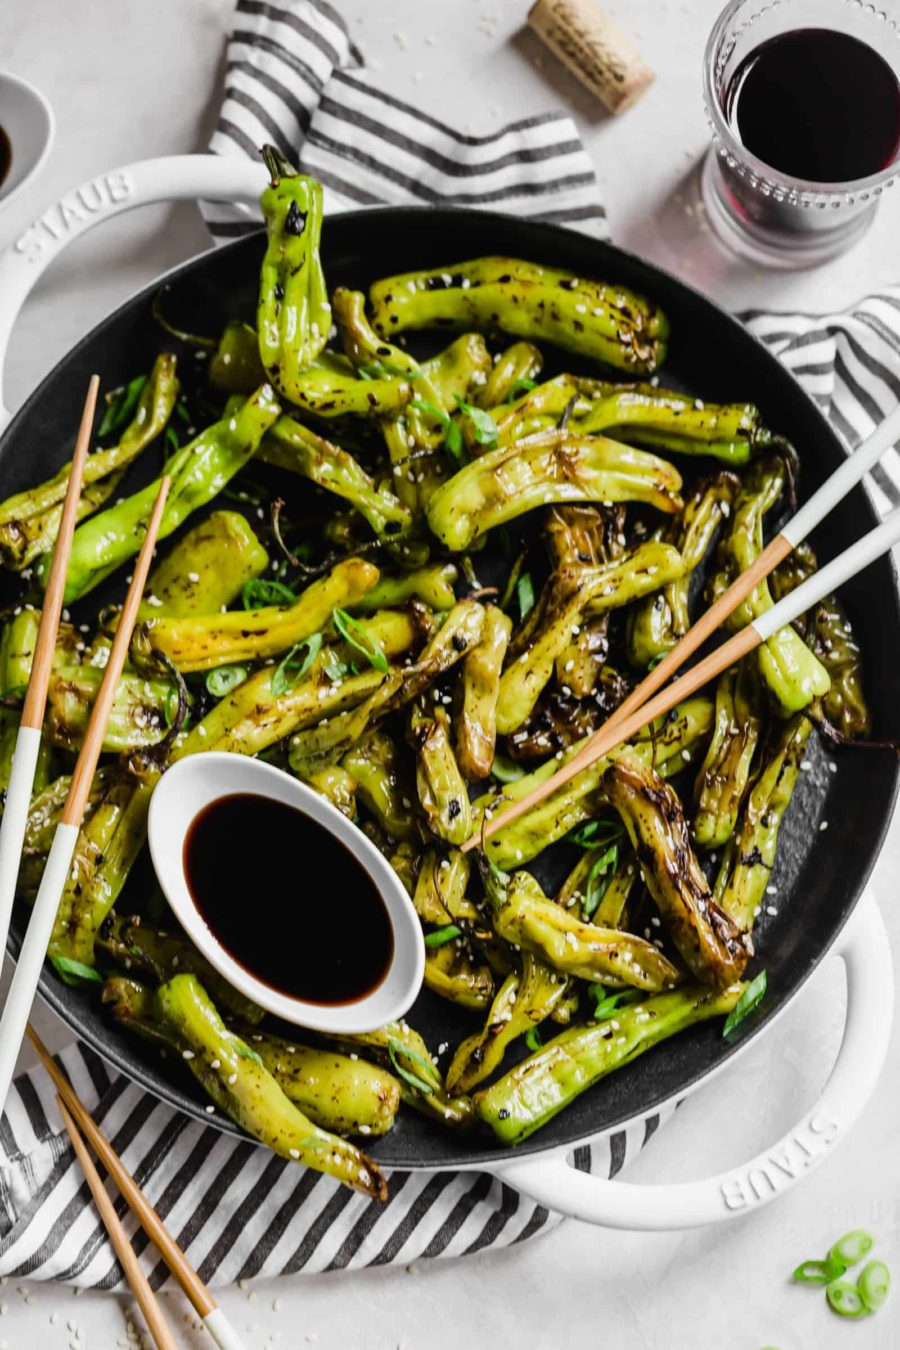 Blistered Shisito Peppers with Garlic and Sesame